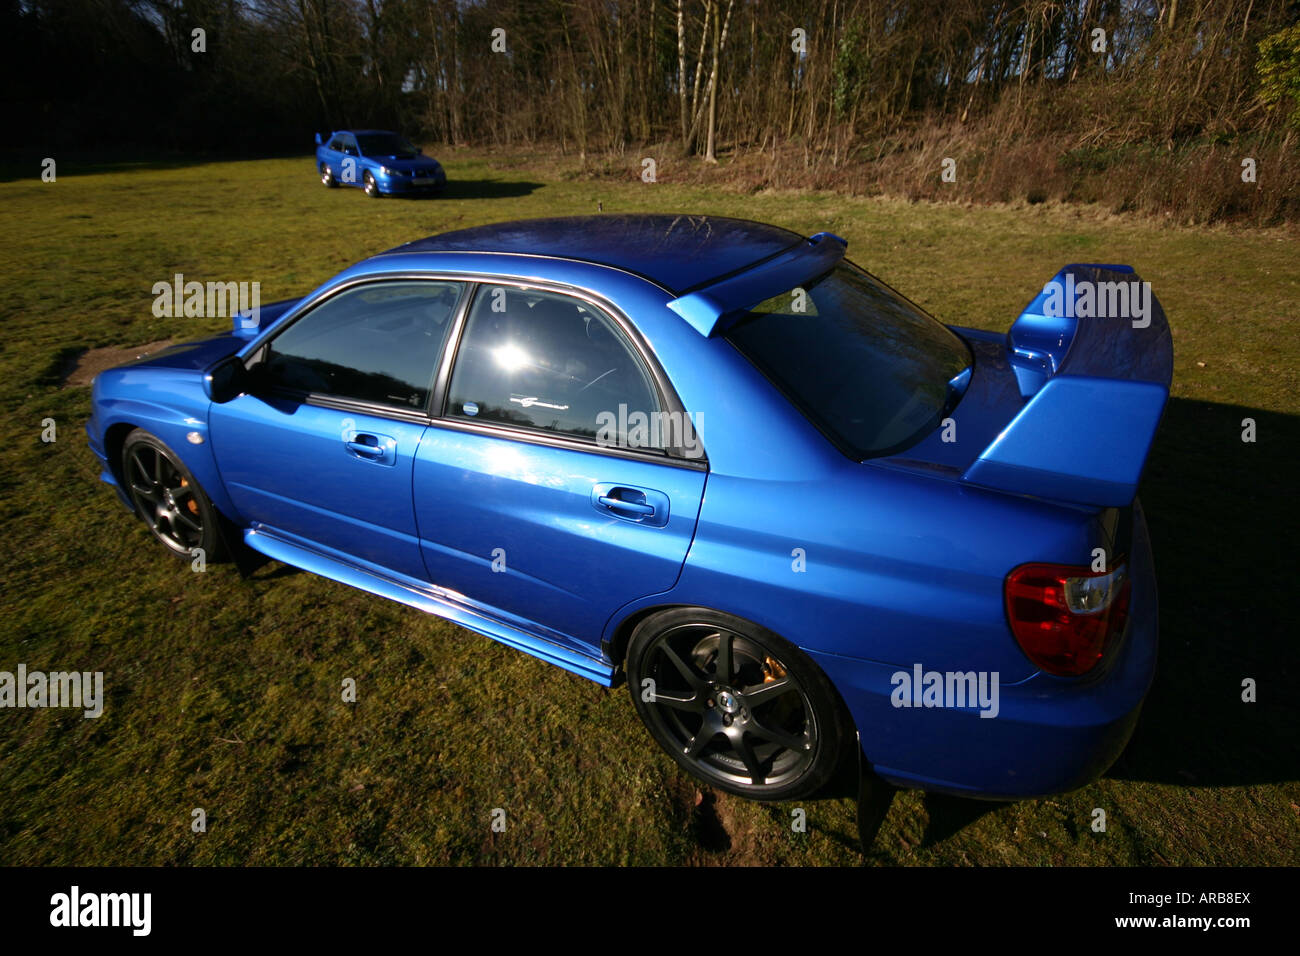 subaru impreza turbo blue saloon 39 family car 39 fast quick racer japan stock photo 15999601 alamy. Black Bedroom Furniture Sets. Home Design Ideas